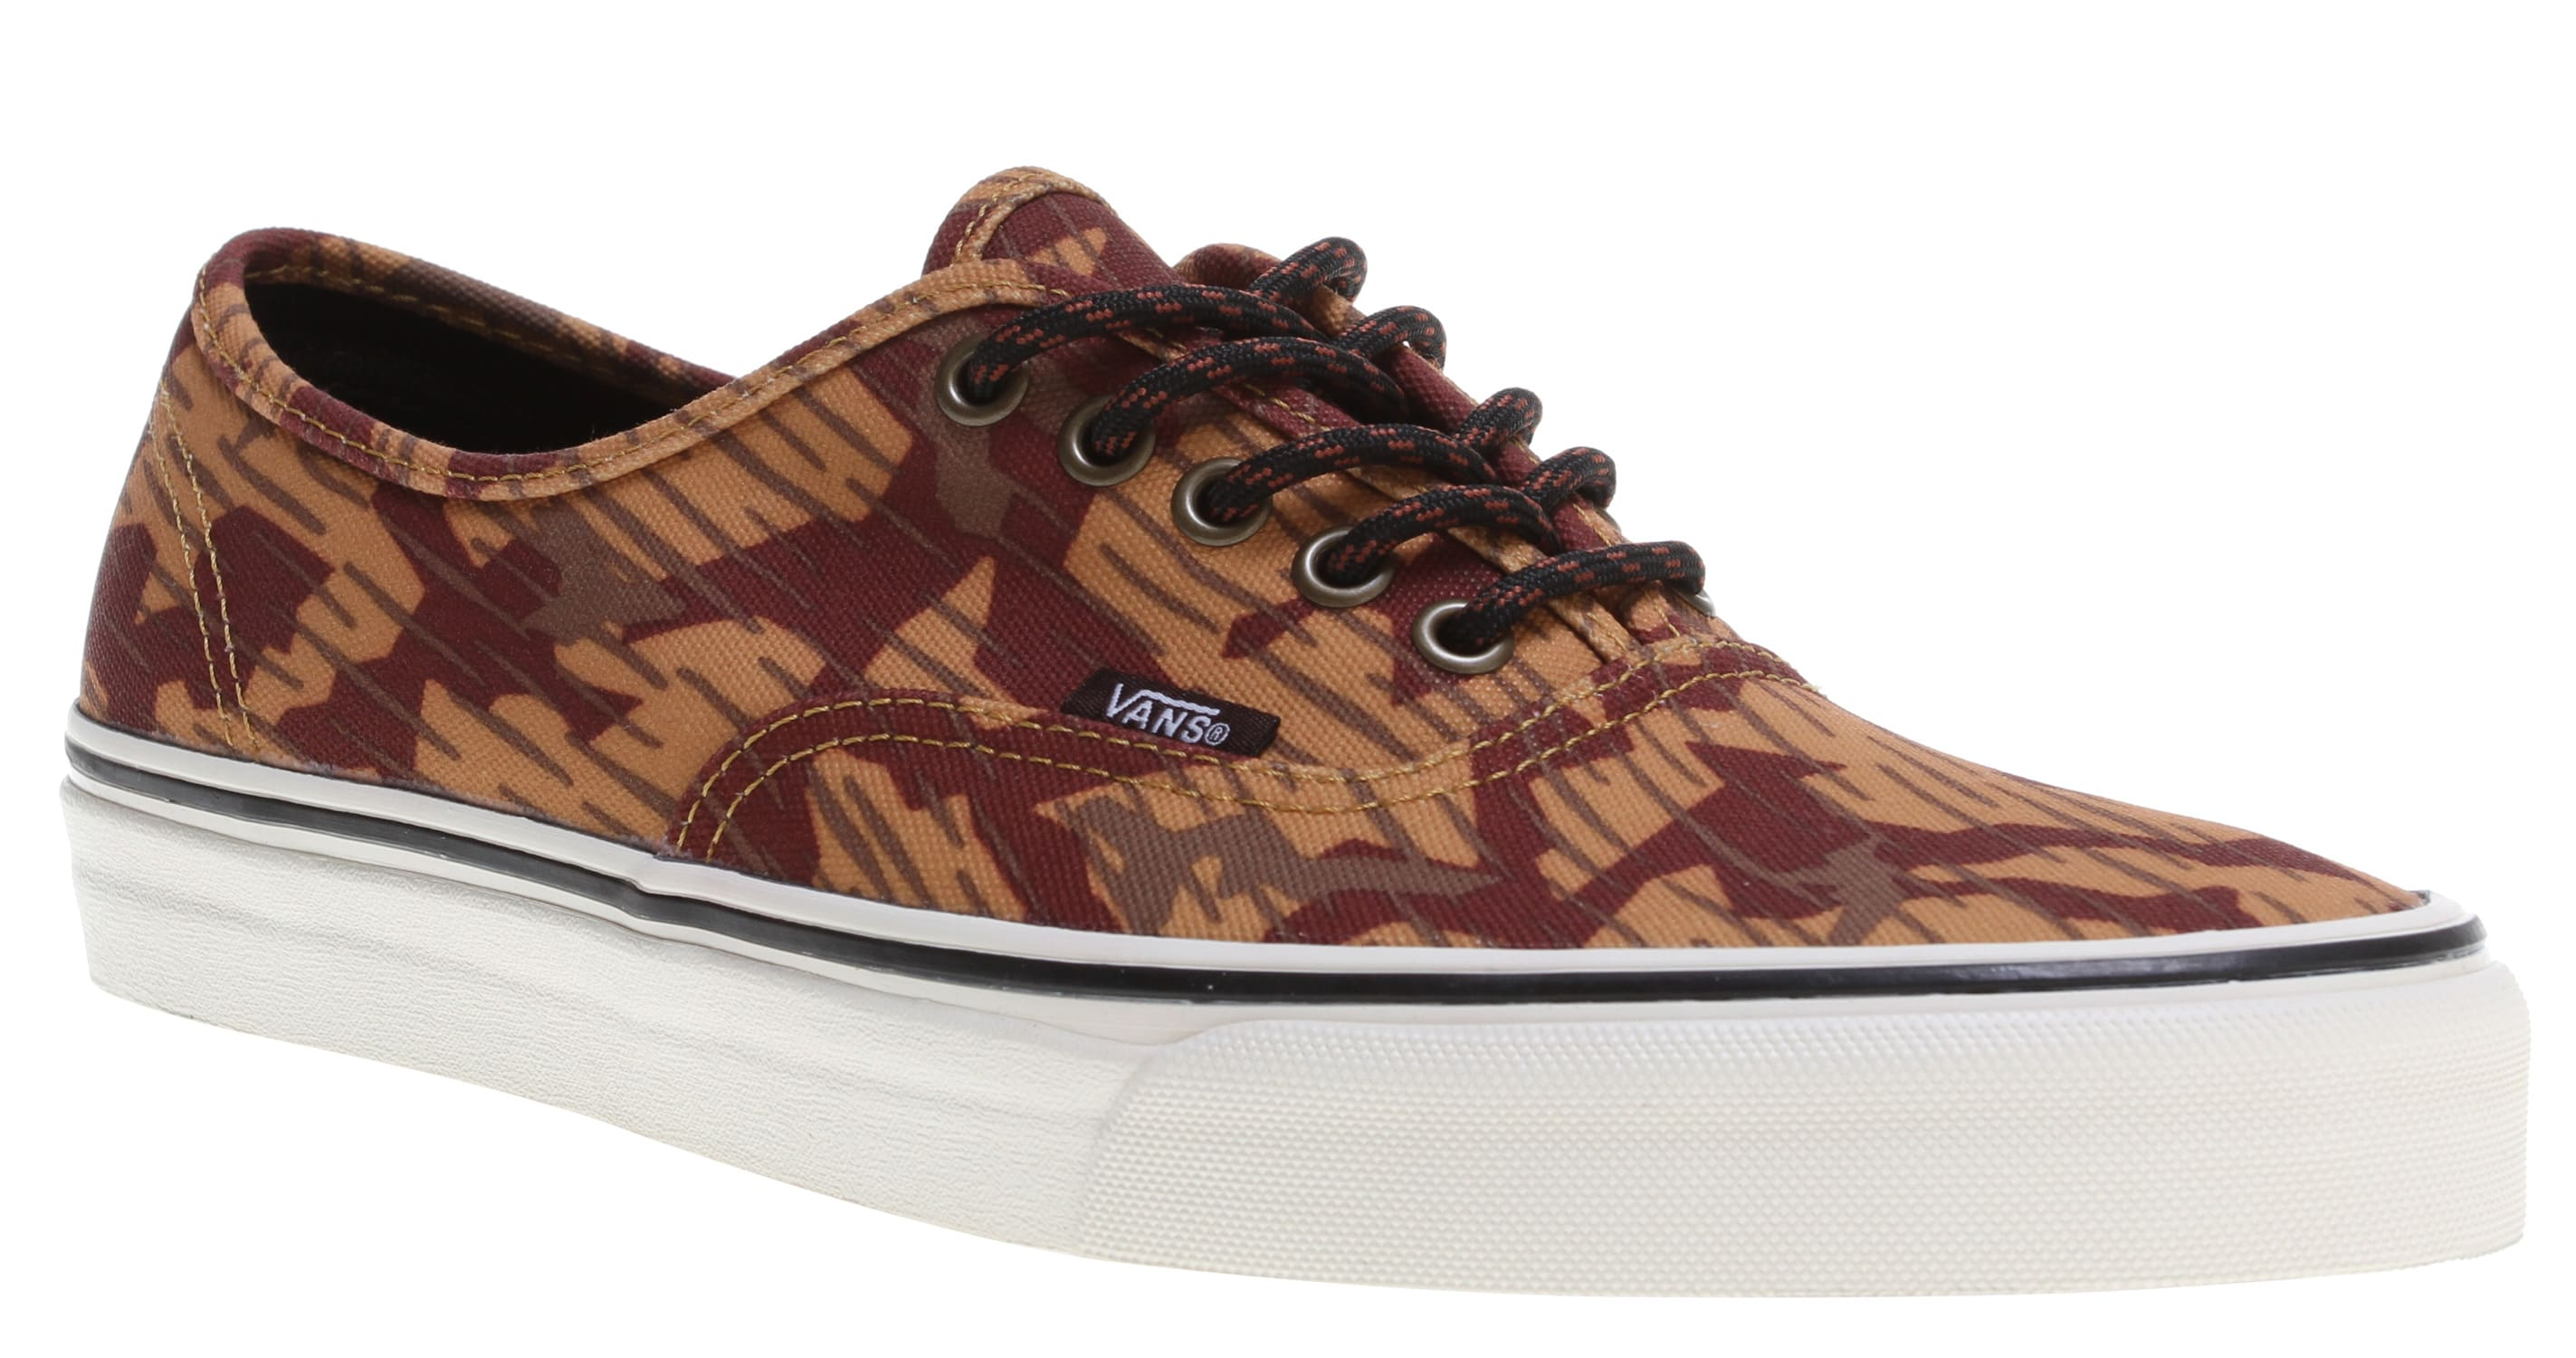 On Sale Vans Authentic Skate Shoes up to 55% off